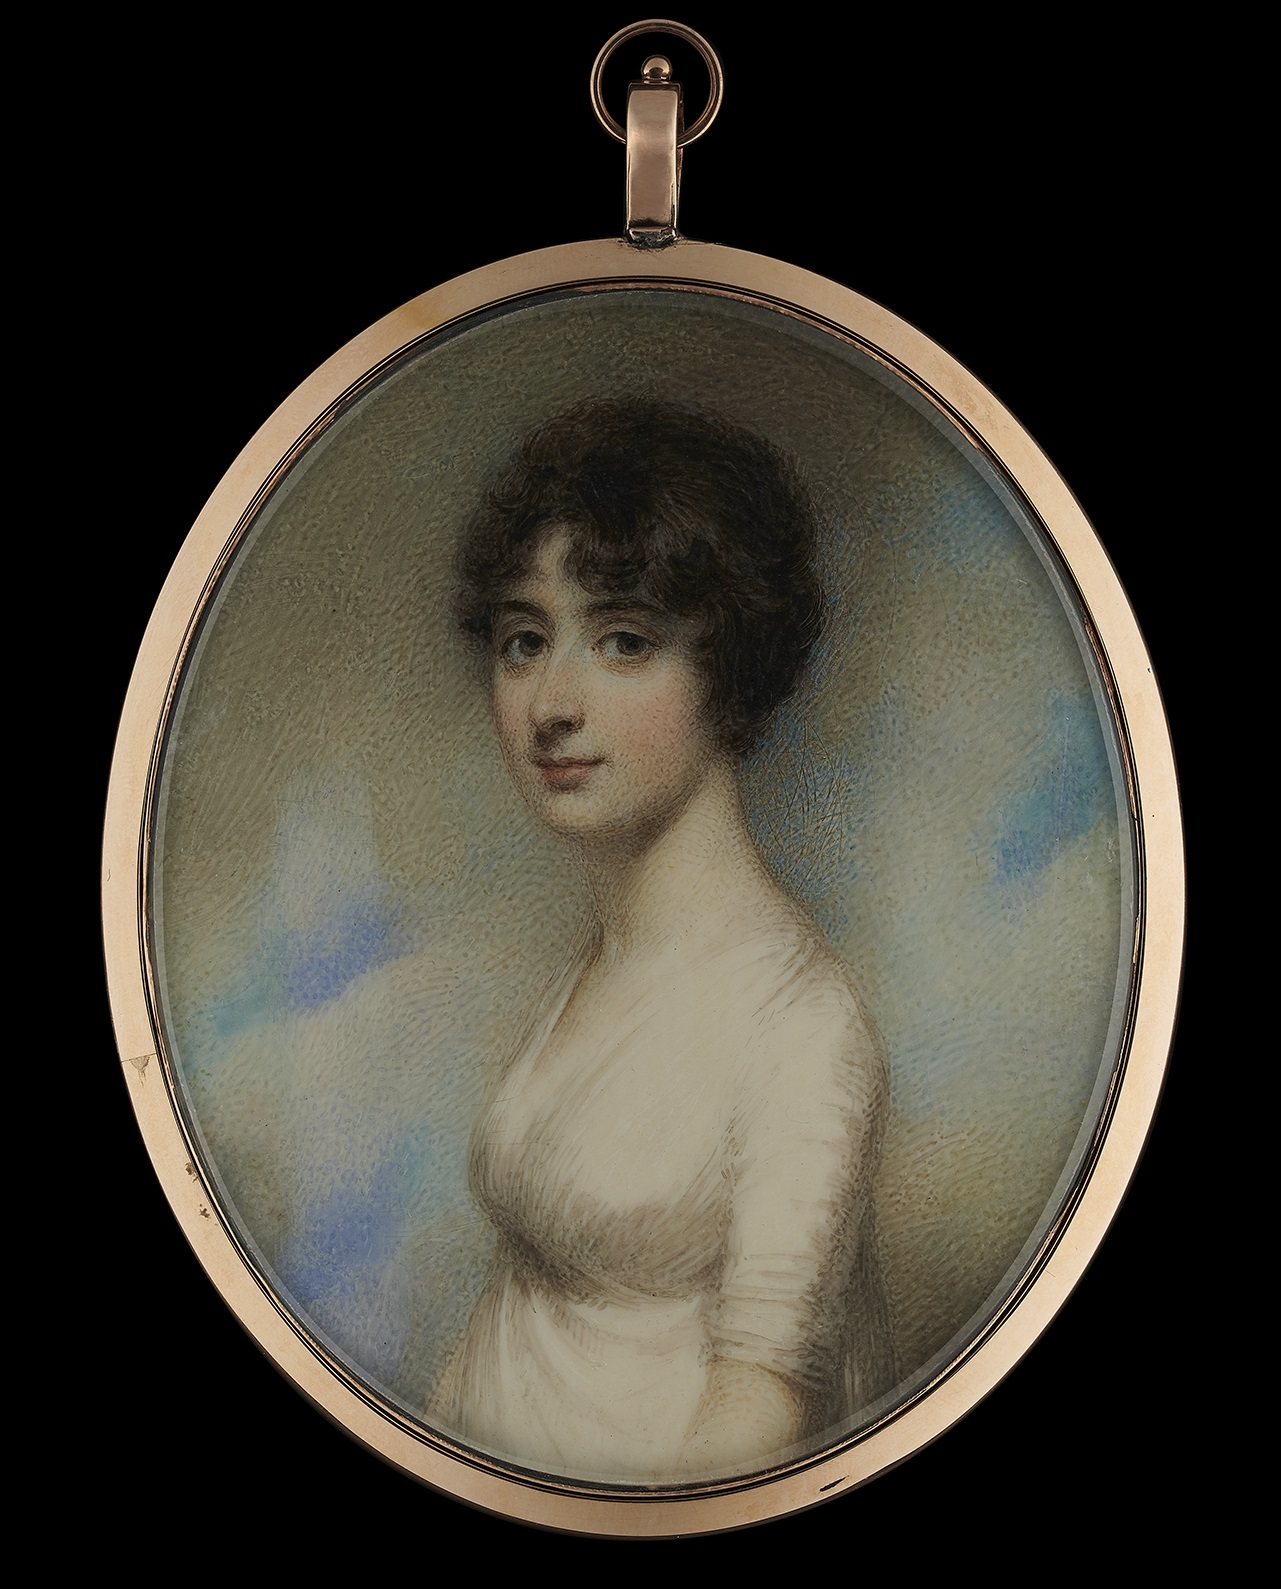 Portrait miniature of Mary Pearson by William Wood